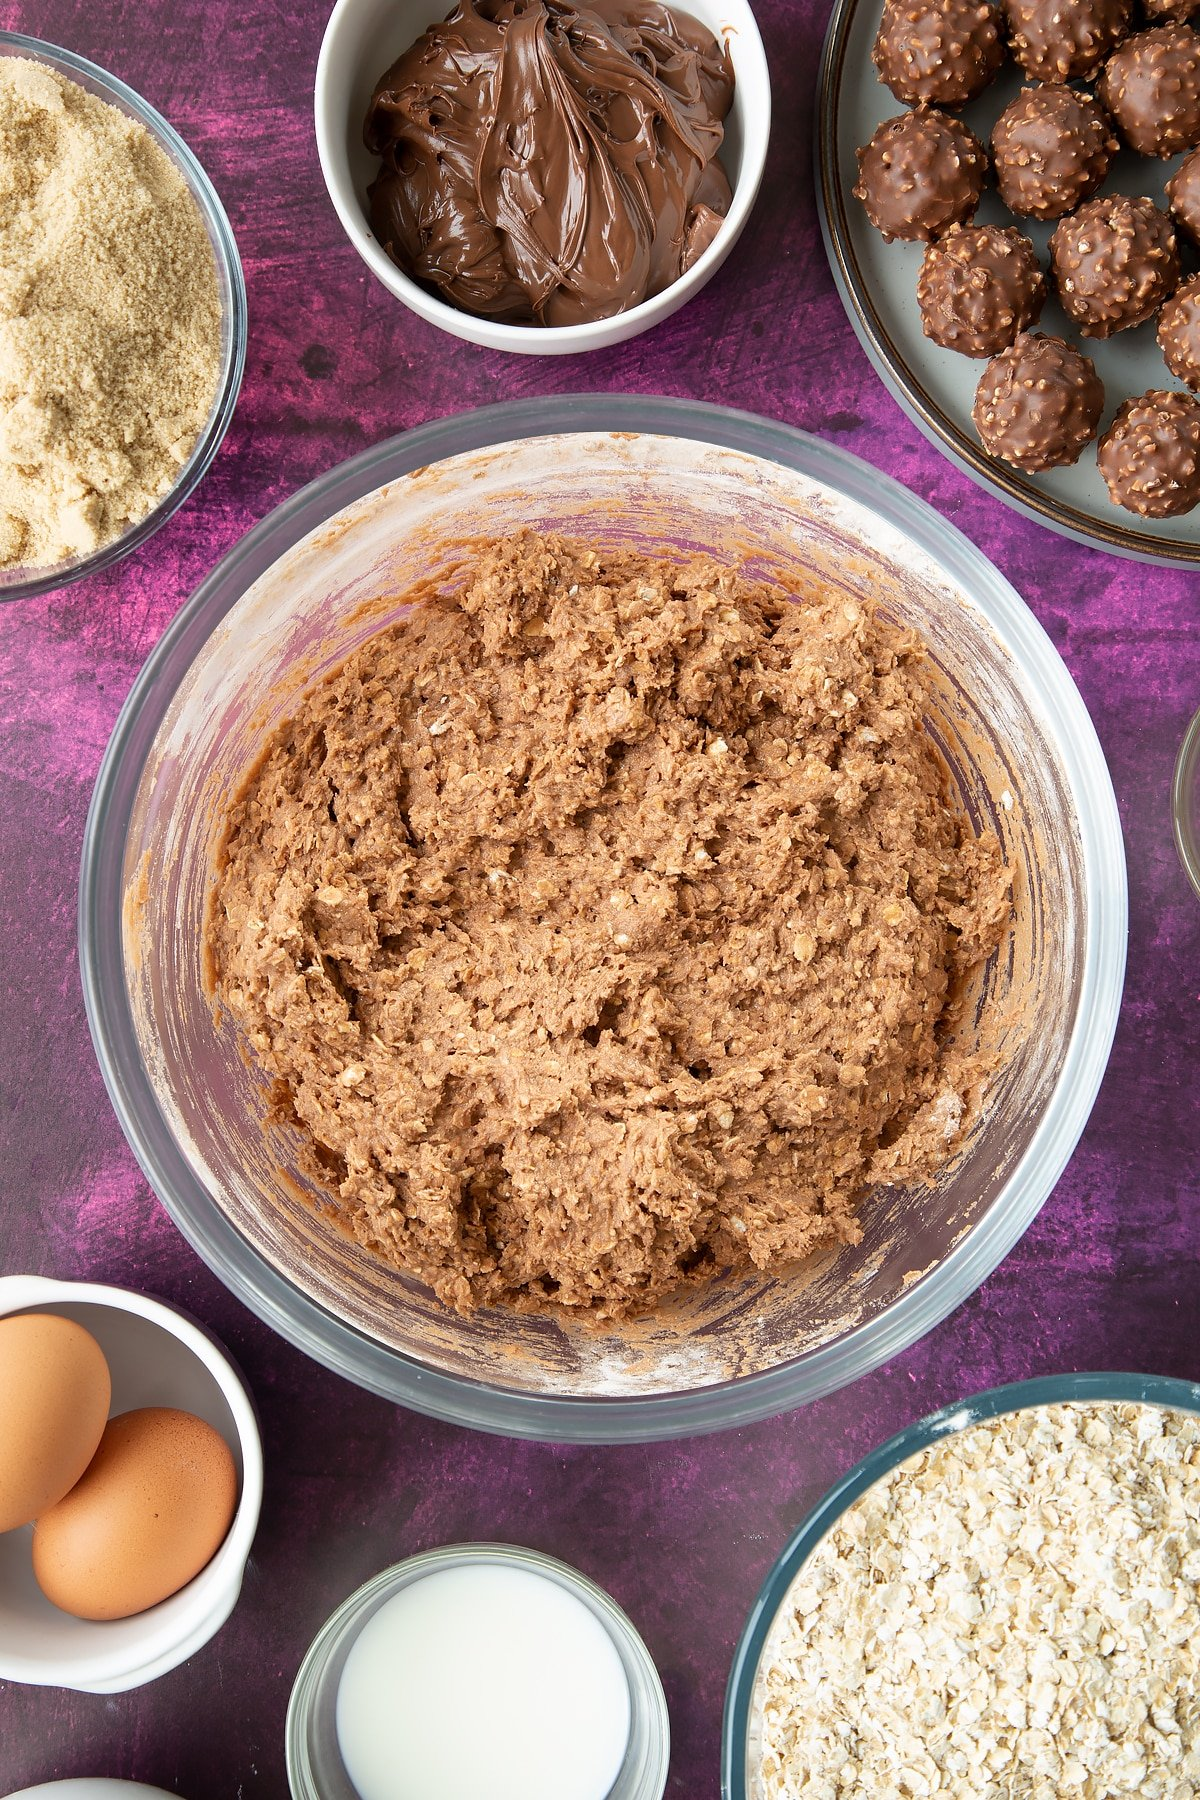 Oaty chocolate cookie dough a large mixing bowl with flour and oats on top. Ingredients to make Ferrero Rocher cookies surround the bowl.